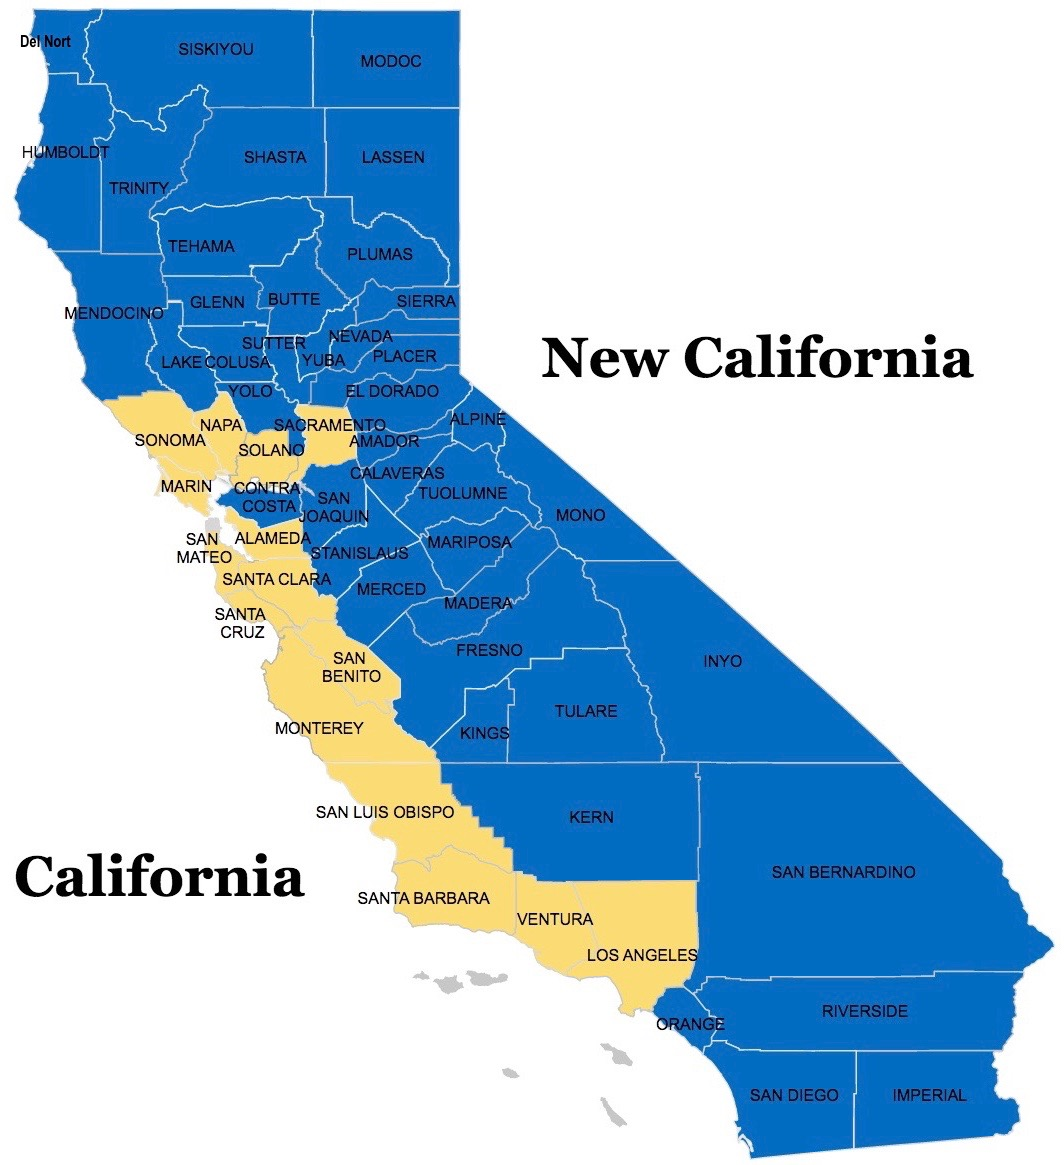 map of new california  agenda  radio - map of new california agenda  radio